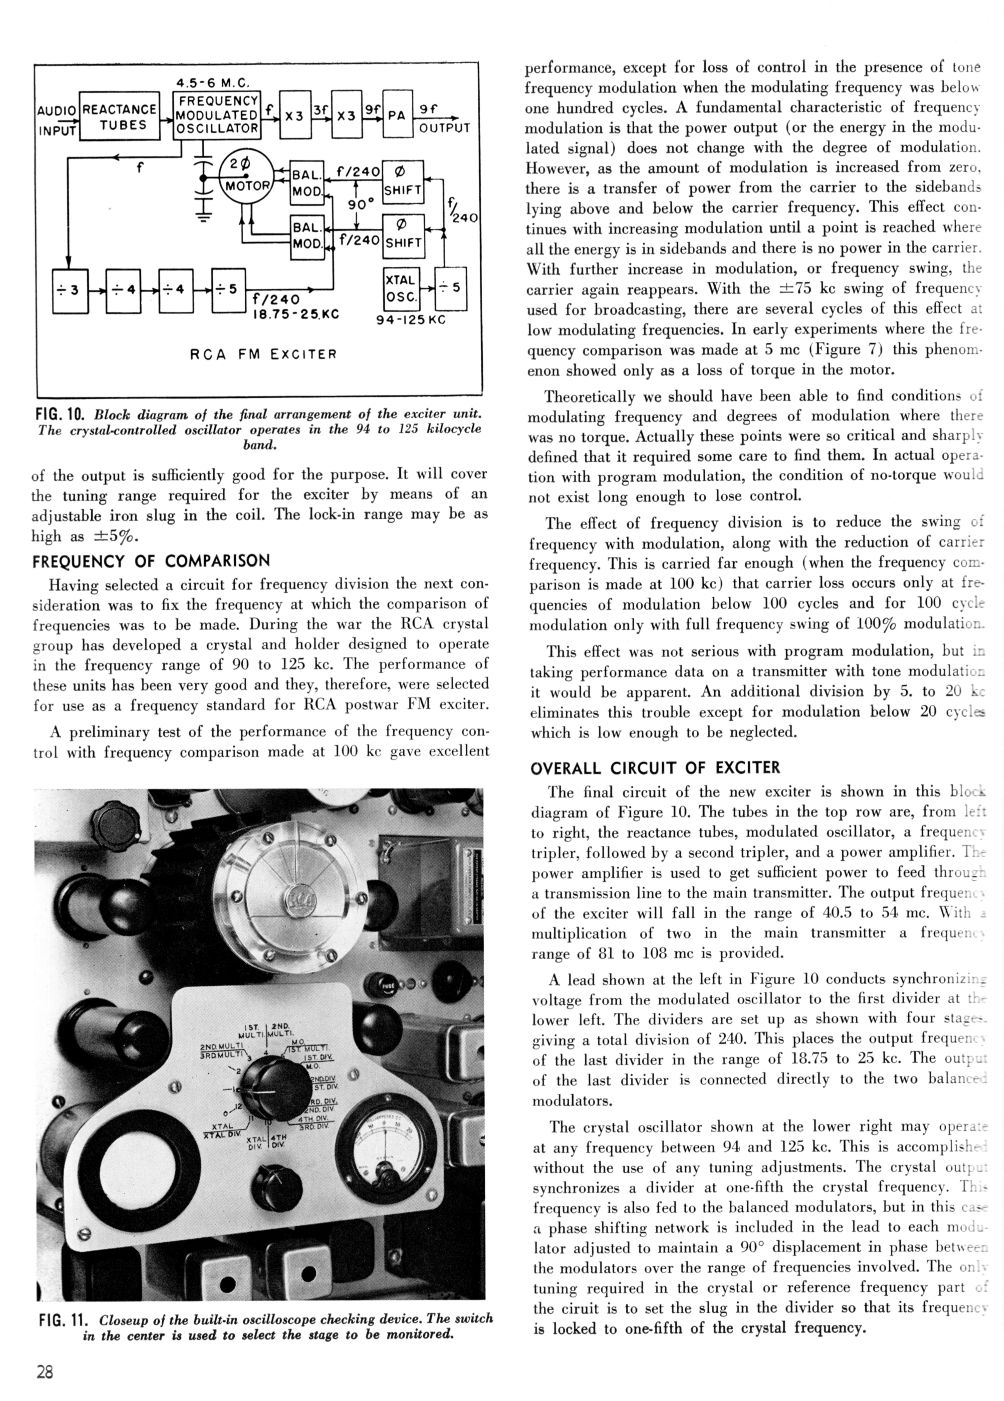 RCA MI-7015 Direct FM Exciter, page 5